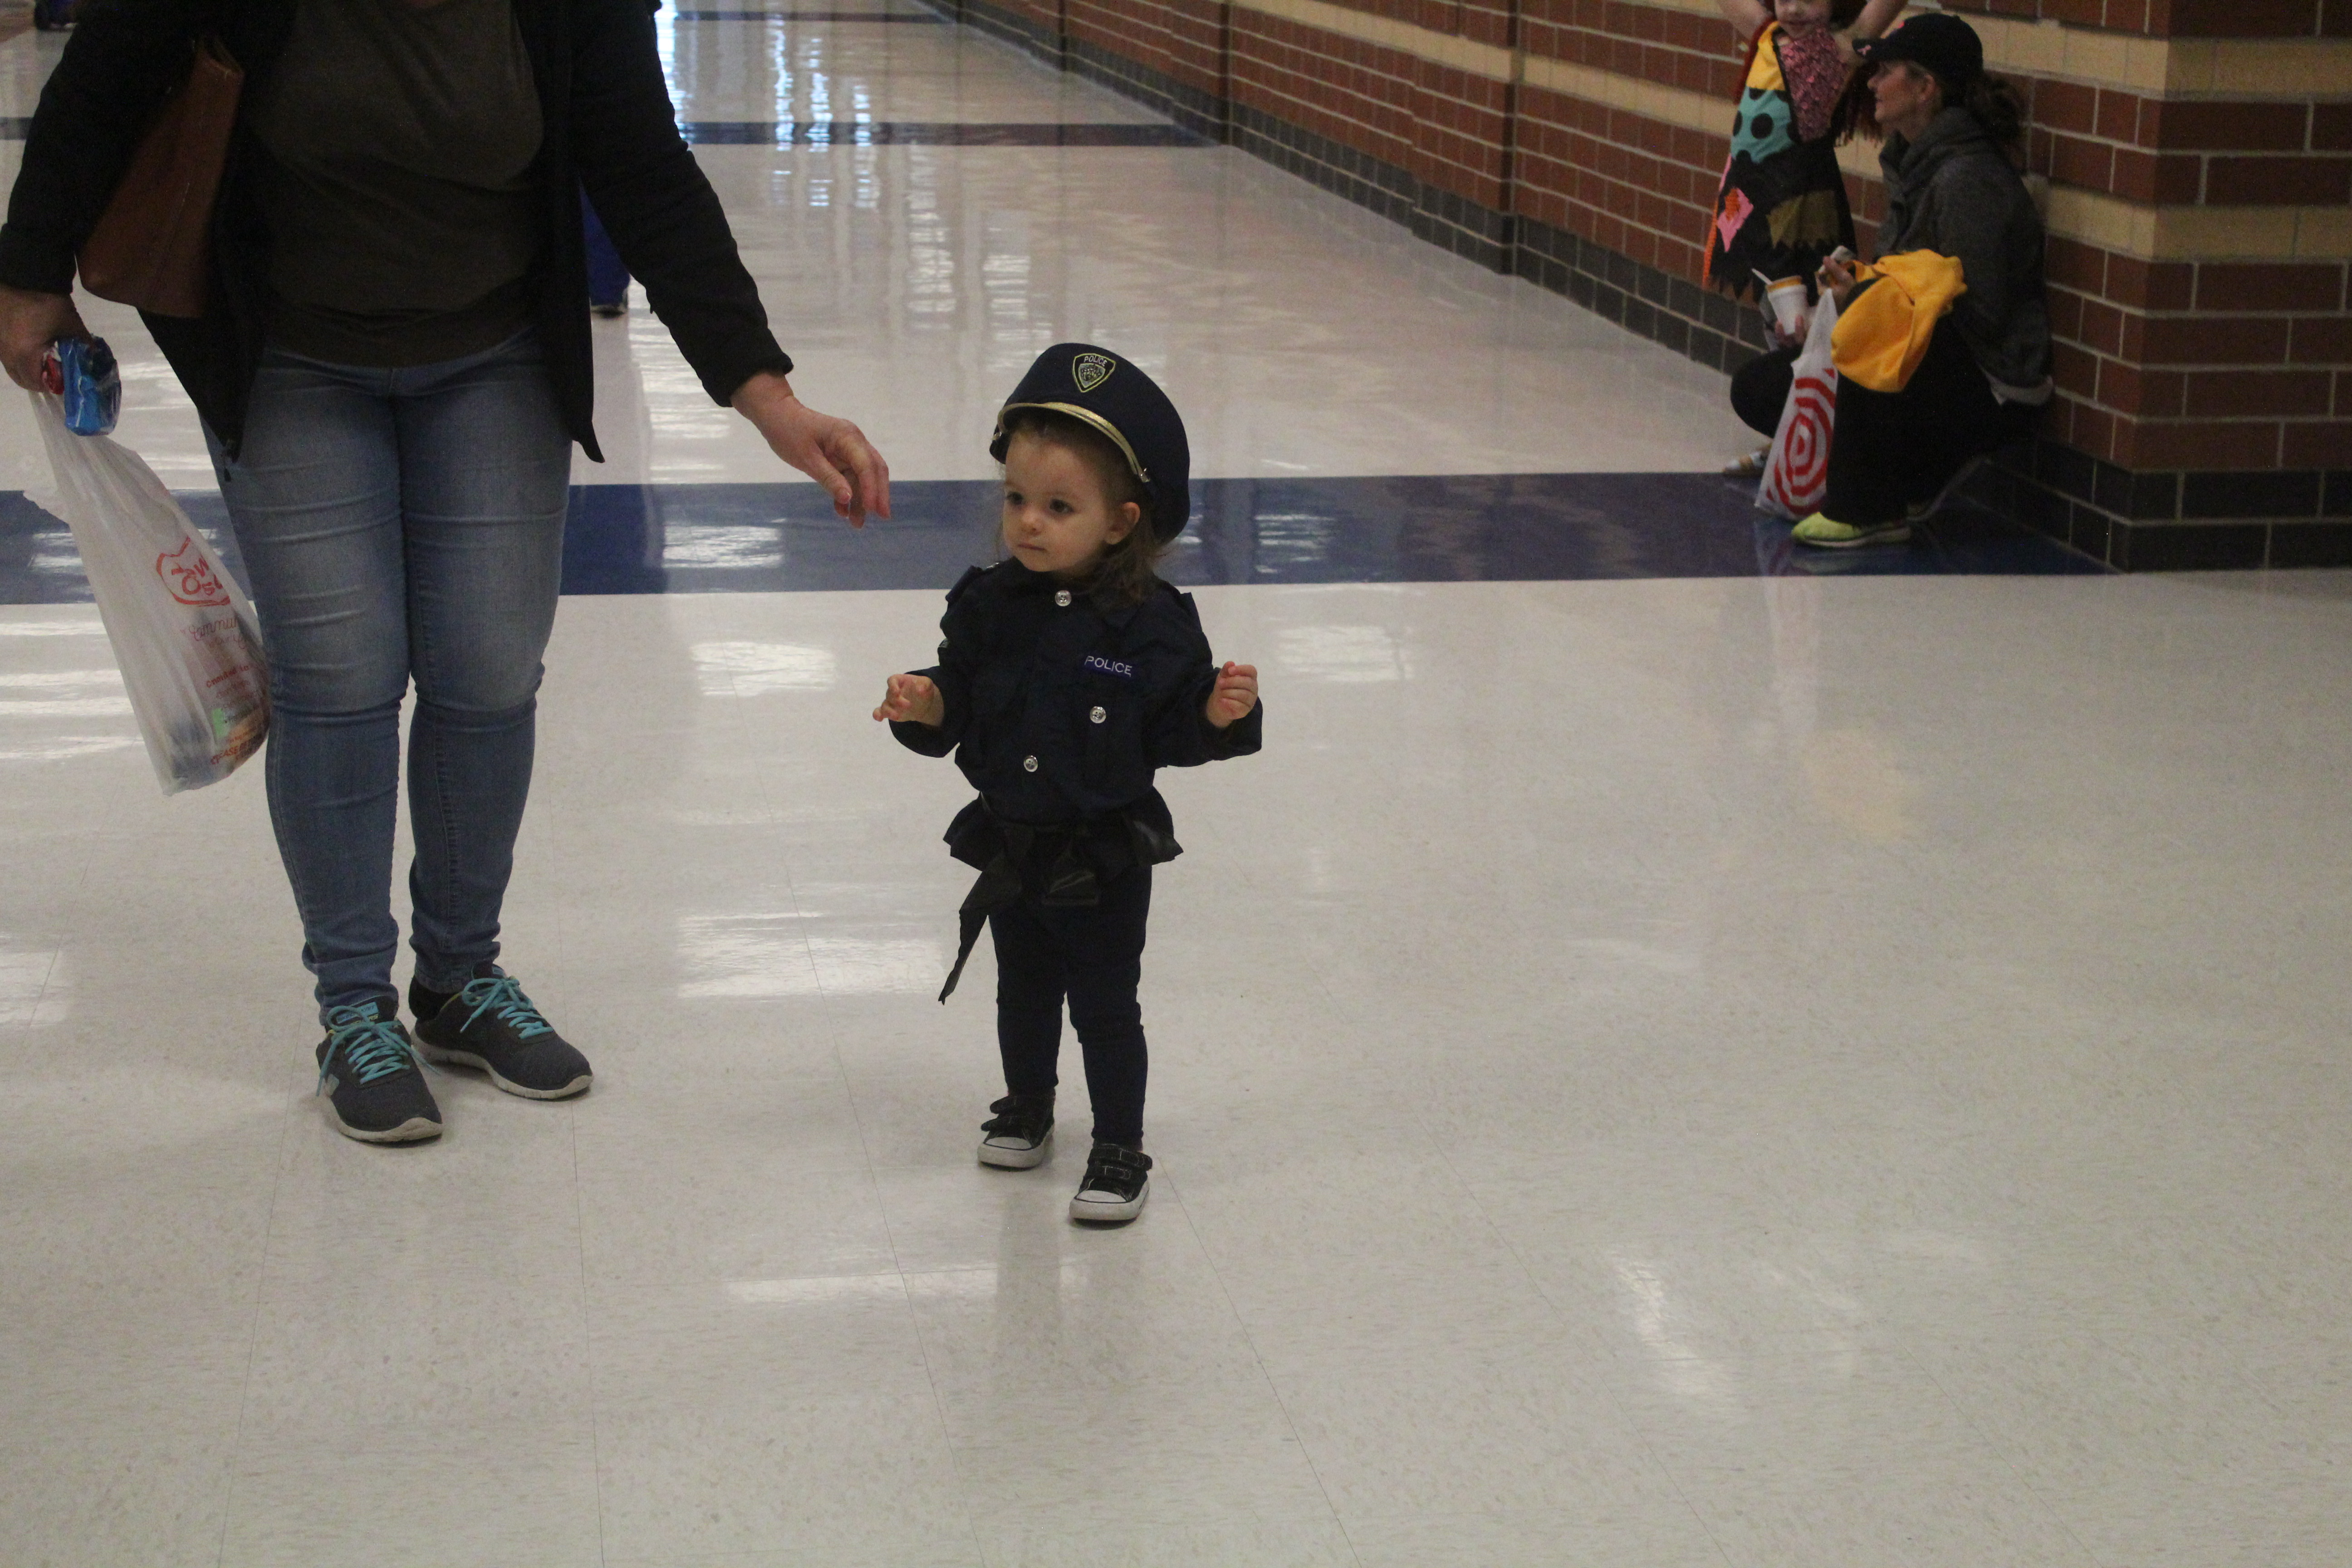 A little girl is dressed as a police officer